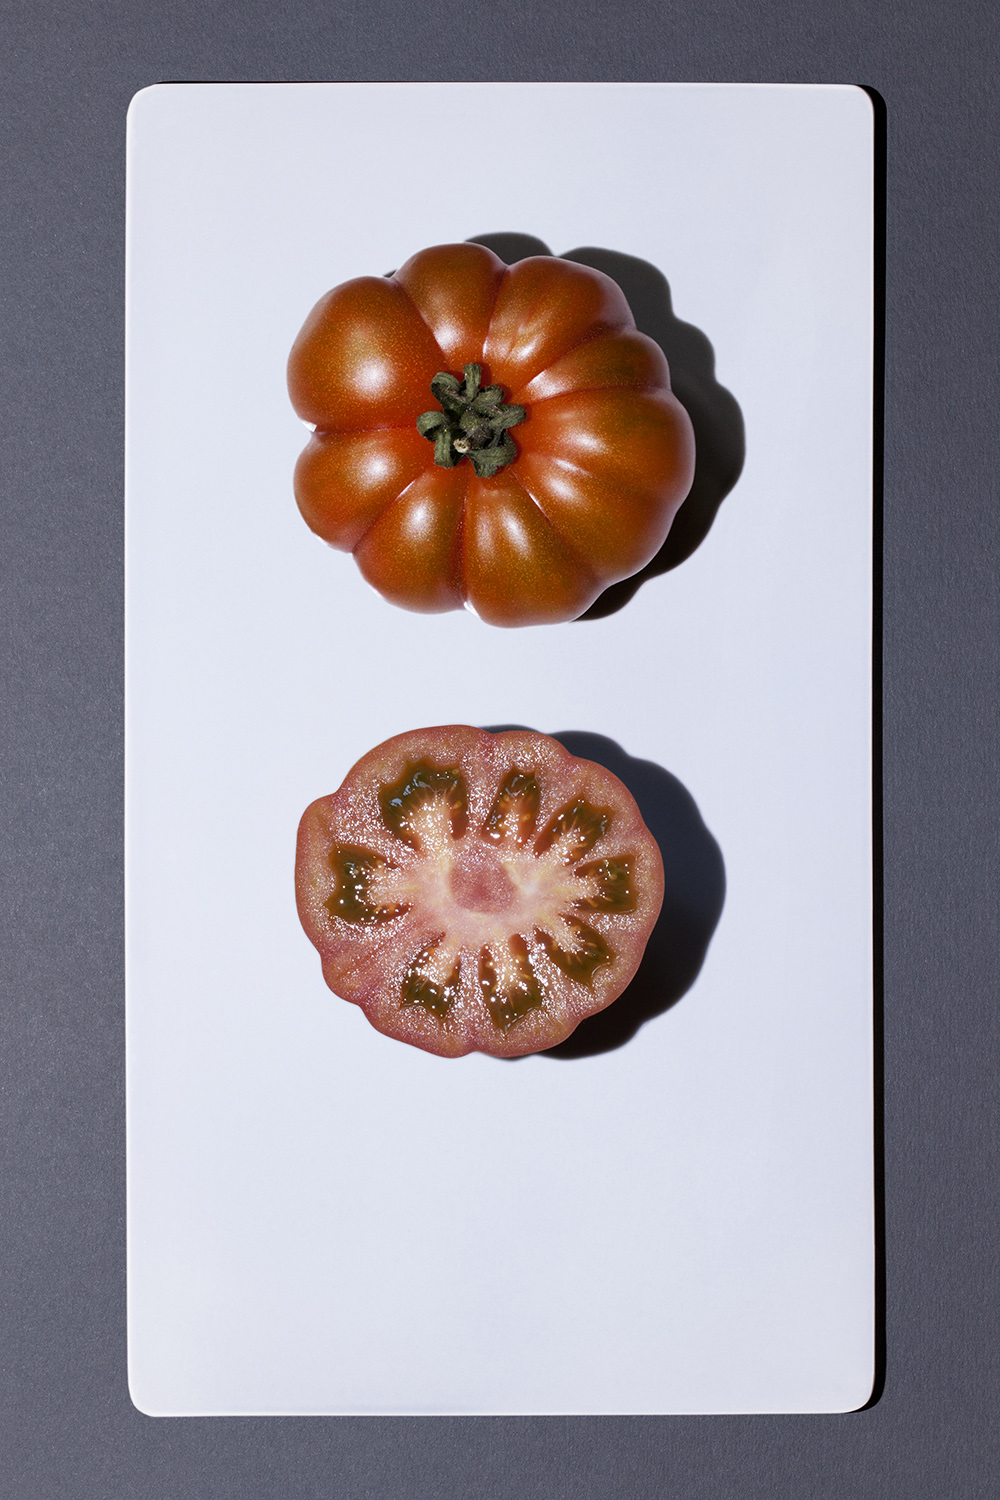 tomato_coeur_de_boeuf_and_slice.jpg